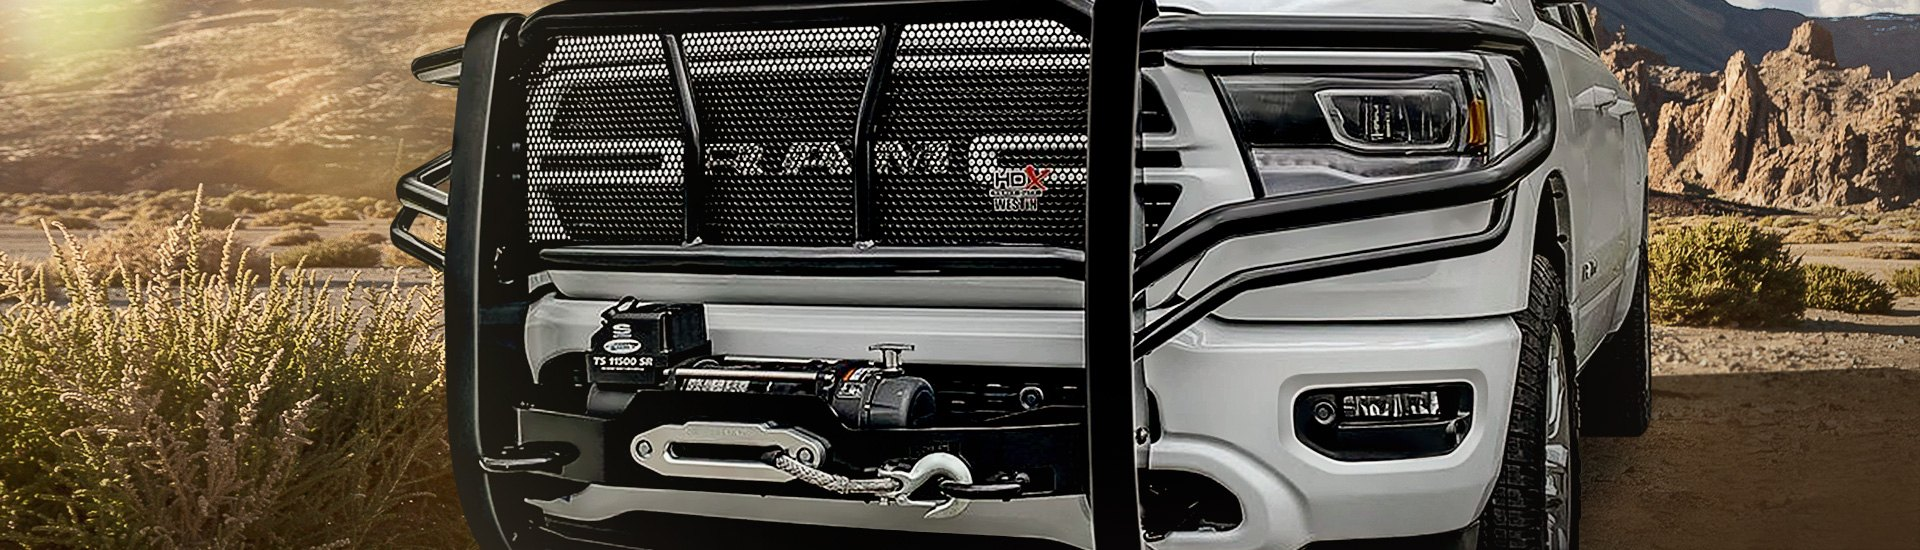 For All HD Truck Owners Out There - Brand-New HDX Winch Mount Grille Guard By Westin